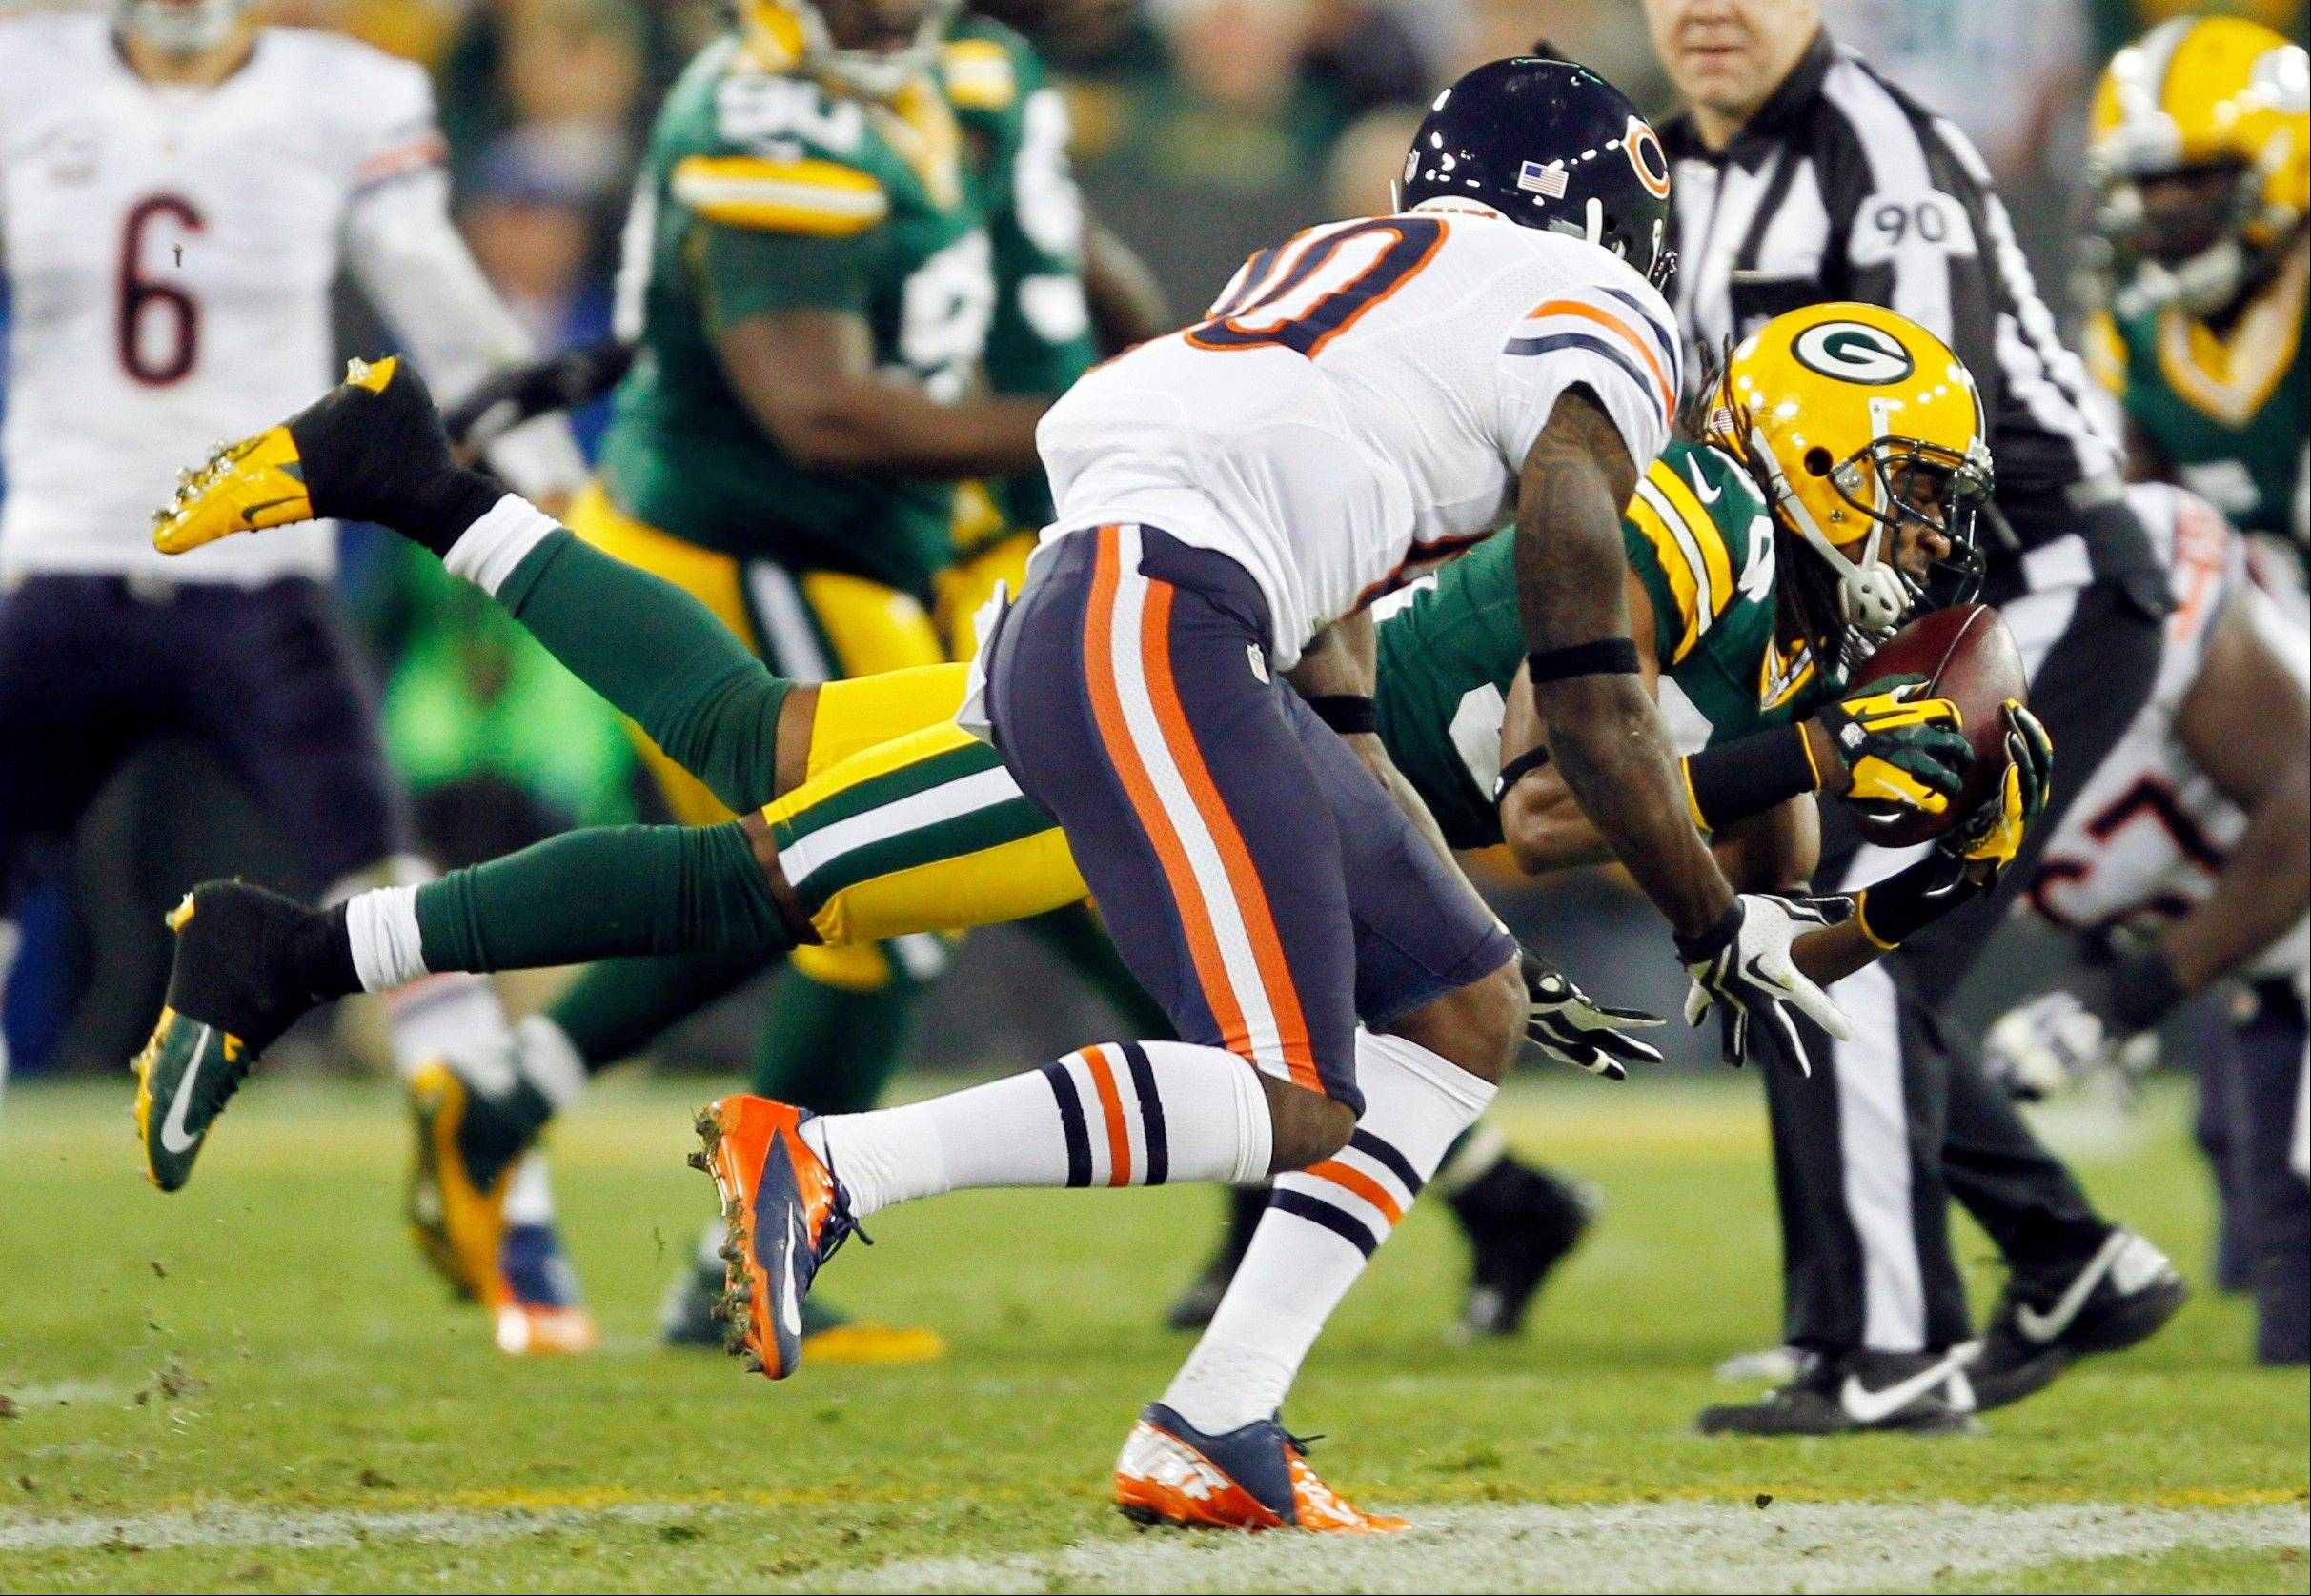 Green Bay Packers' Tramon Williams intercepts a pass in front of Chicago Bears' Earl Bennett during the first half.